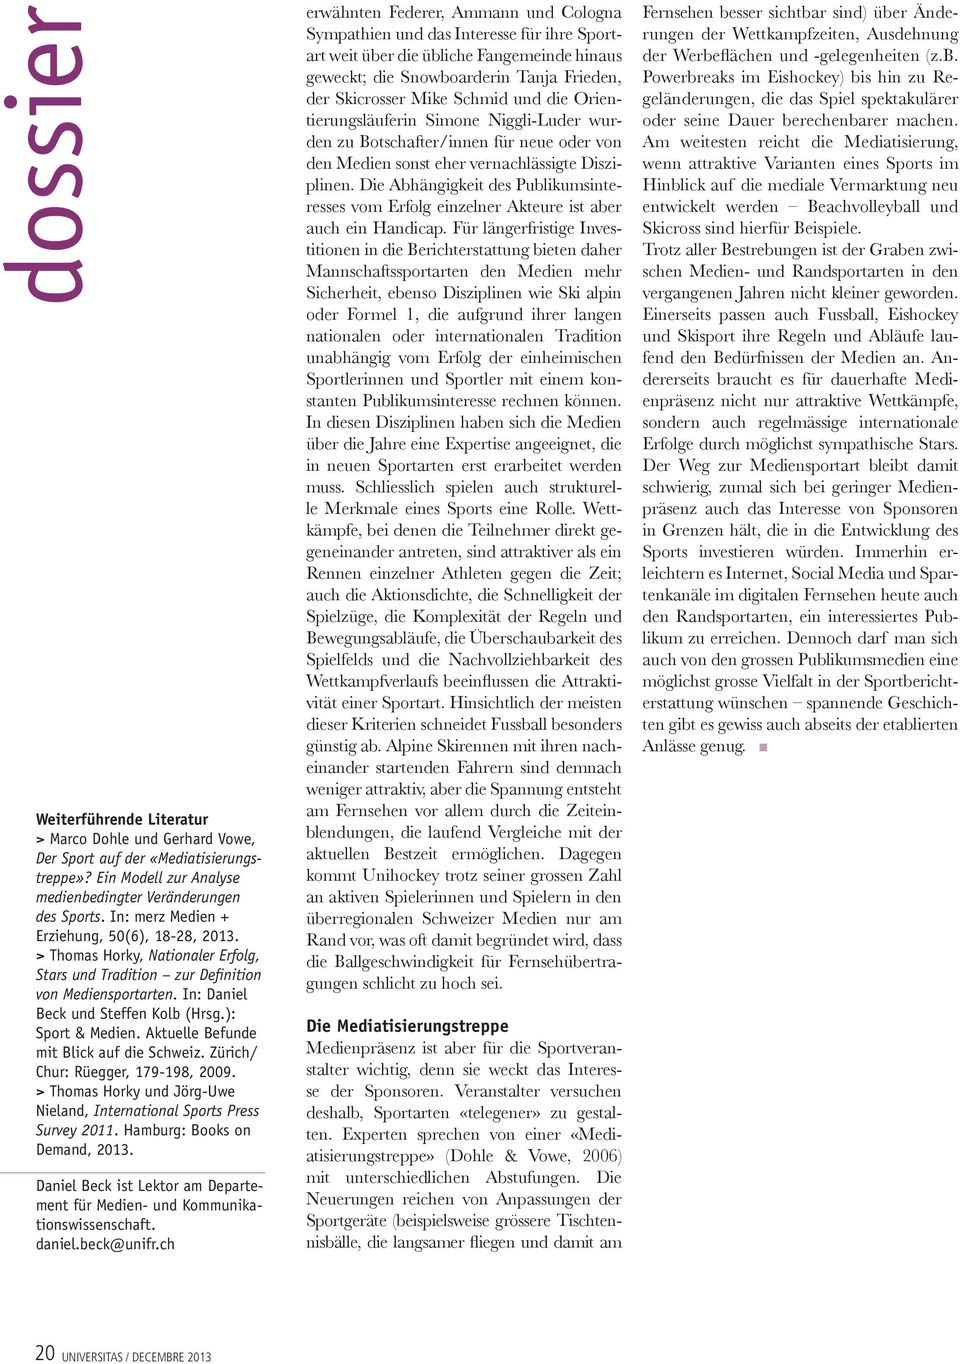 Aktuelle Befunde mit Blick auf die Schweiz. Zürich/ Chur: Rüegger, 179-198, 2009. > Thomas Horky und Jörg-Uwe Nieland, International Sports Press Survey 2011. Hamburg: Books on Demand, 2013.